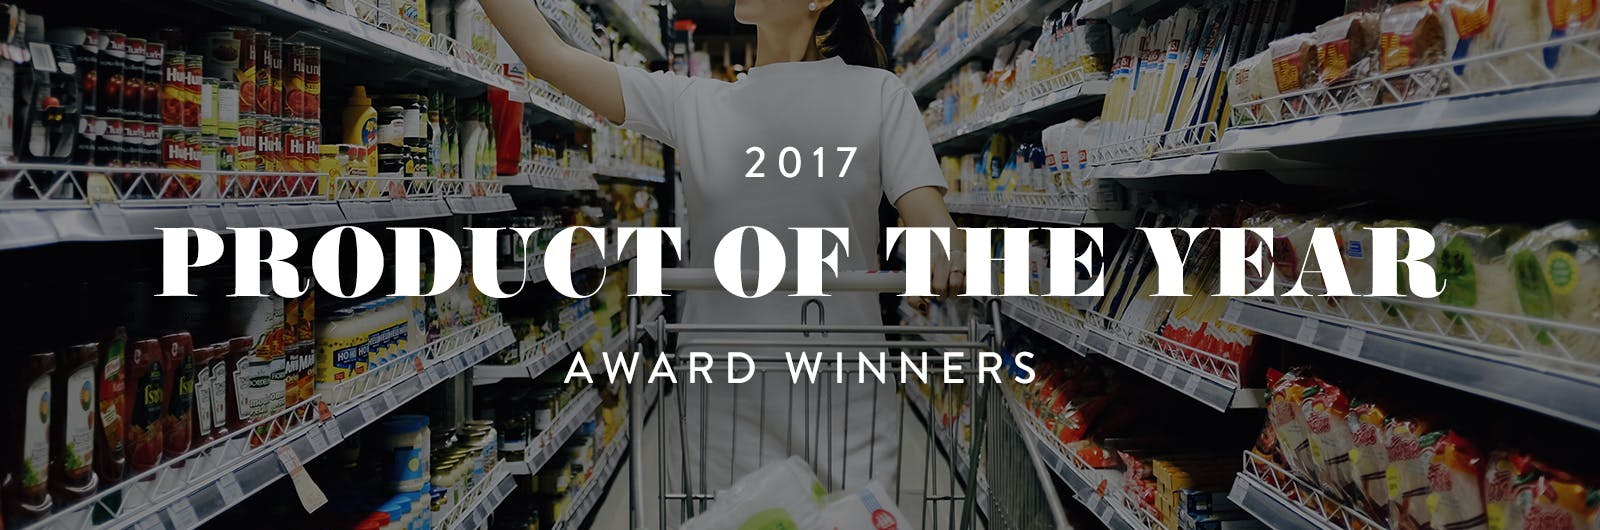 Product of the Year hero